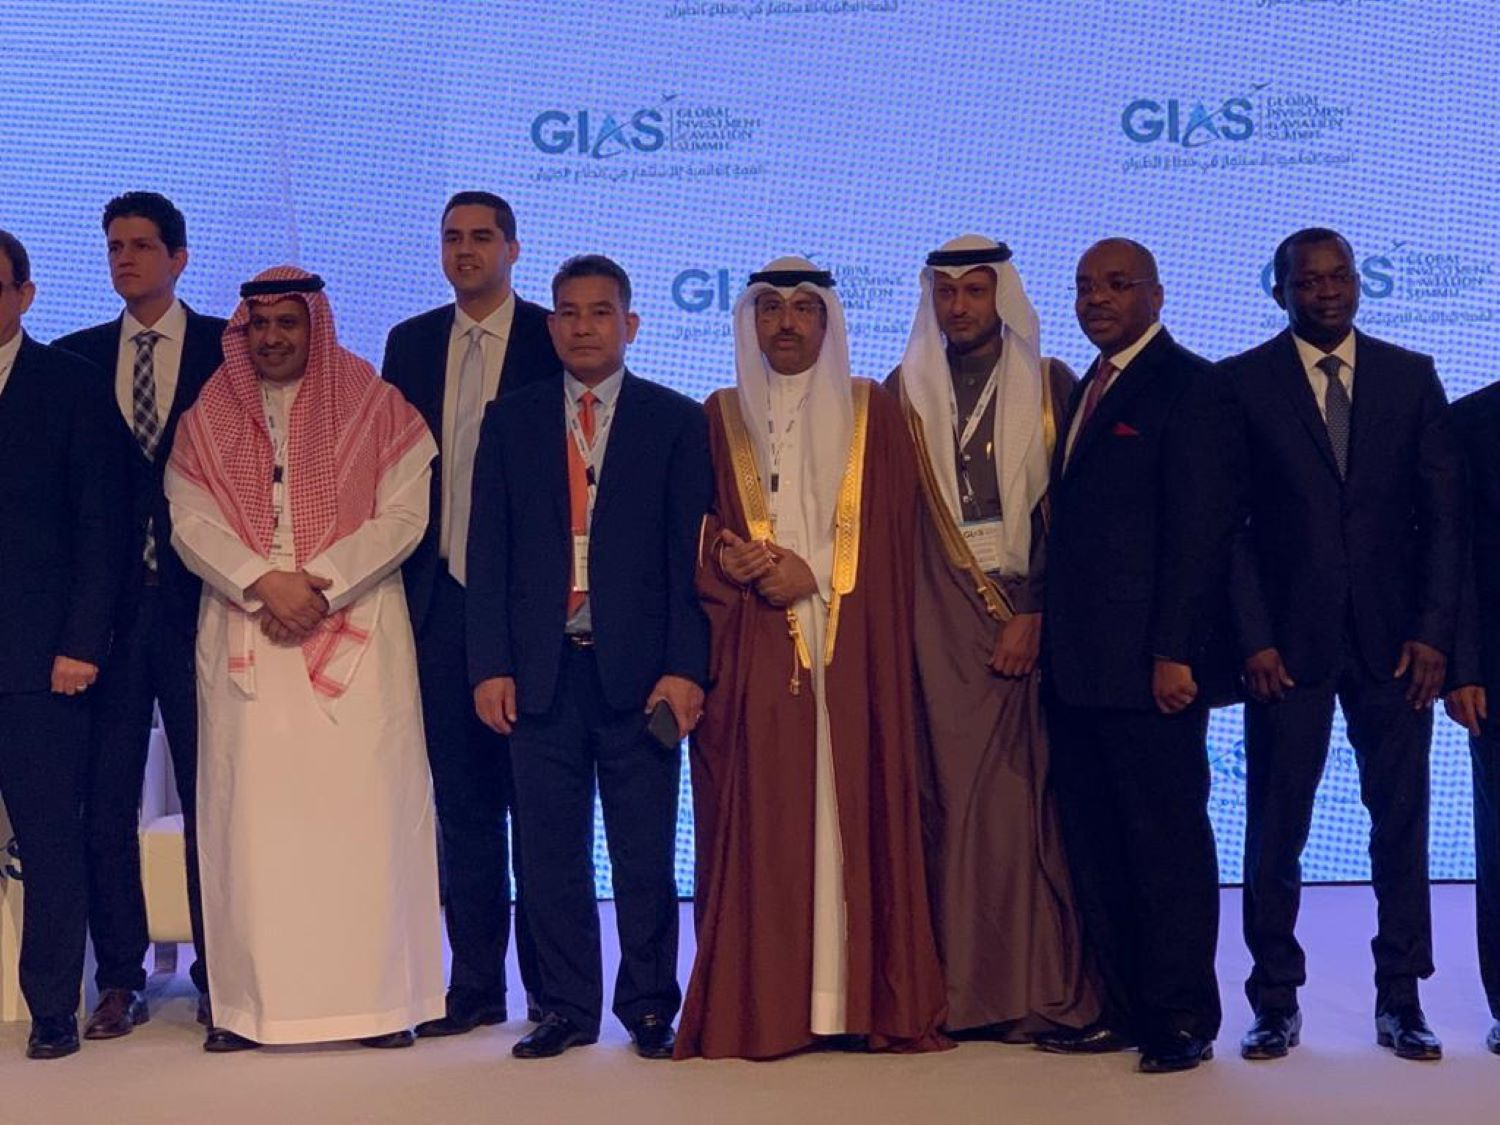 GIAS Summit, Gias 2020: UAE, others to invest in Akwaibom aviation sector